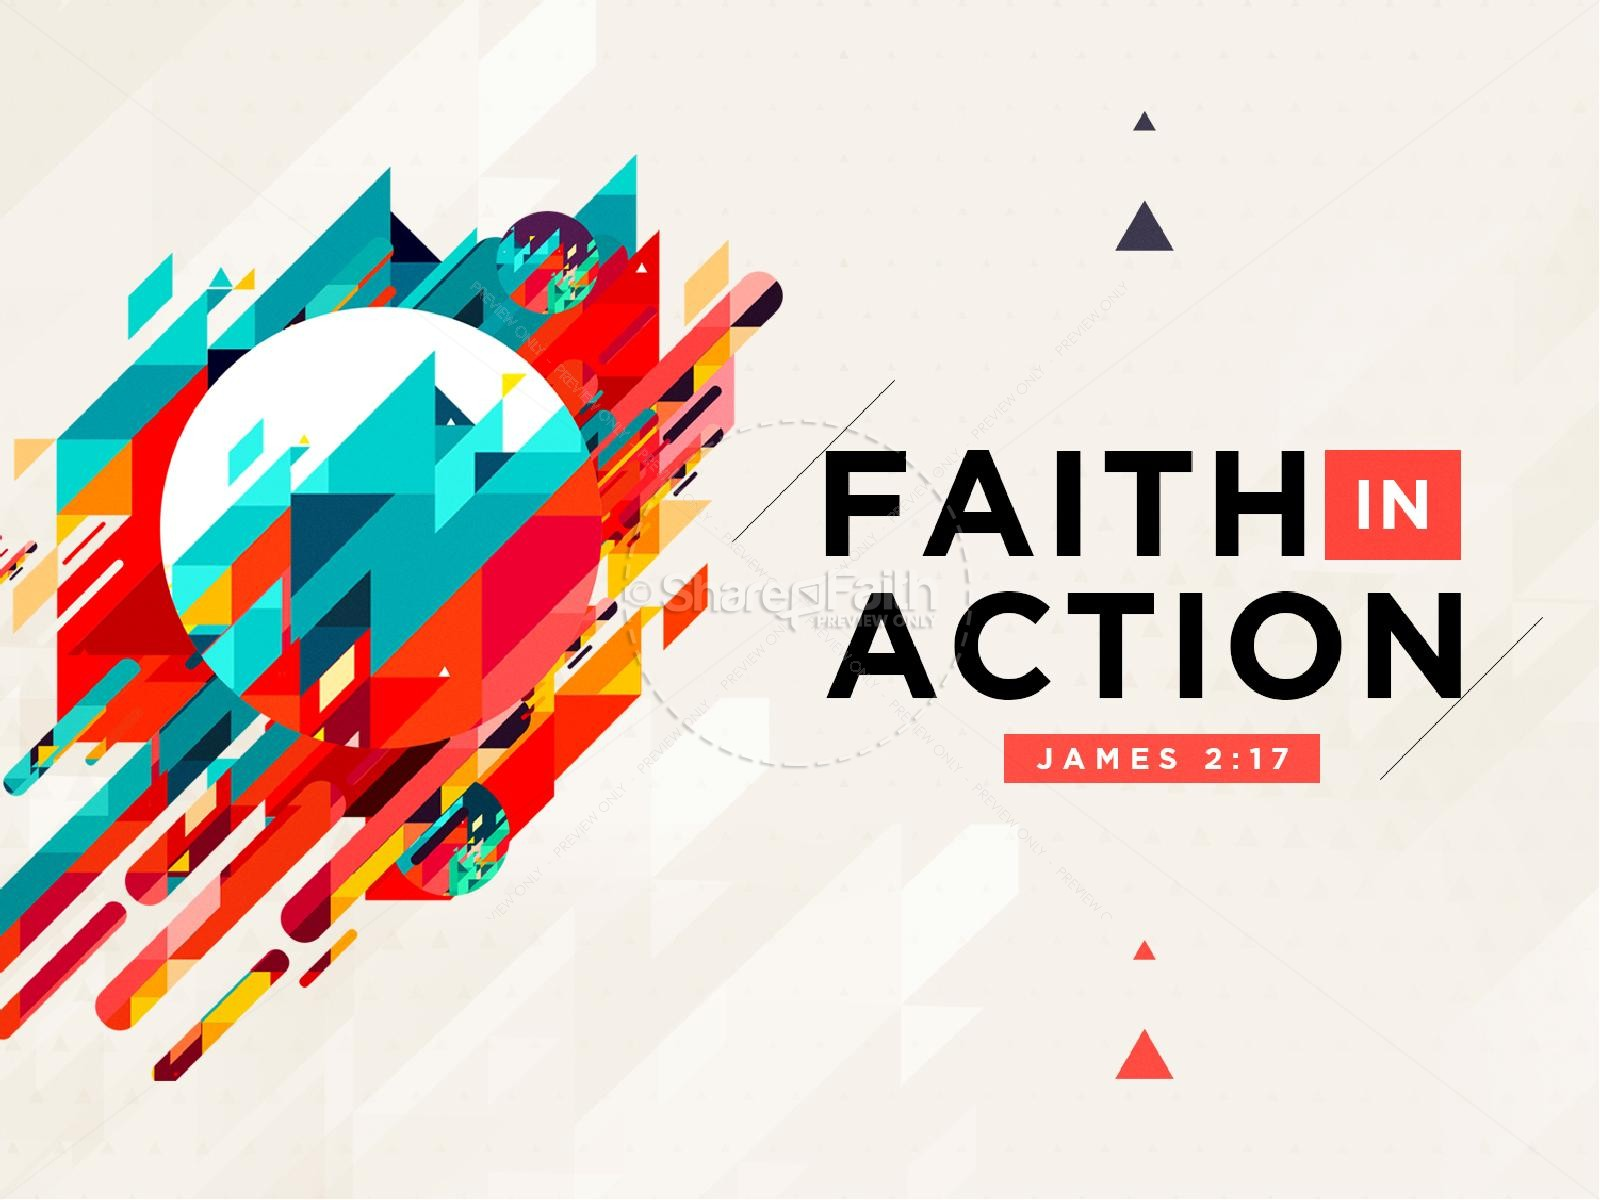 faith in action sermon powerpoint powerpoint sermons good clip art gold clipart